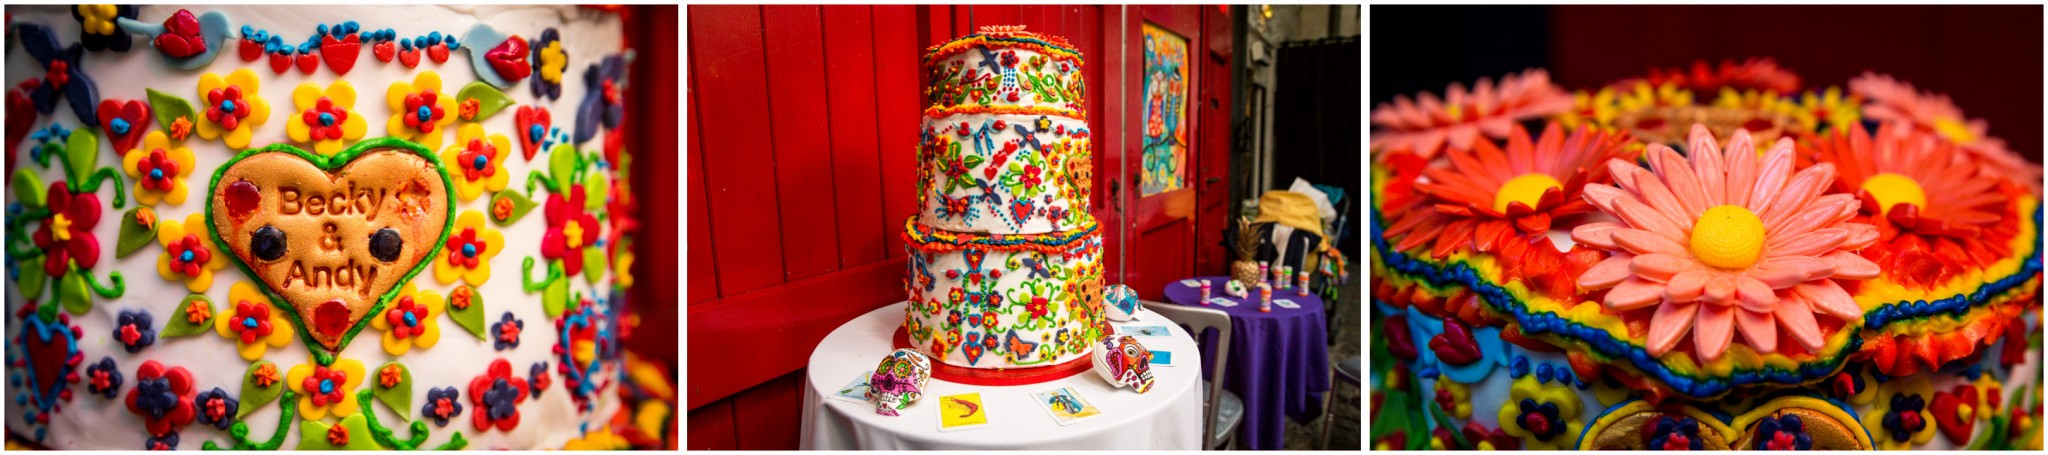 Islington Metal Works Wedding - Day of the Dead Wedding Cake